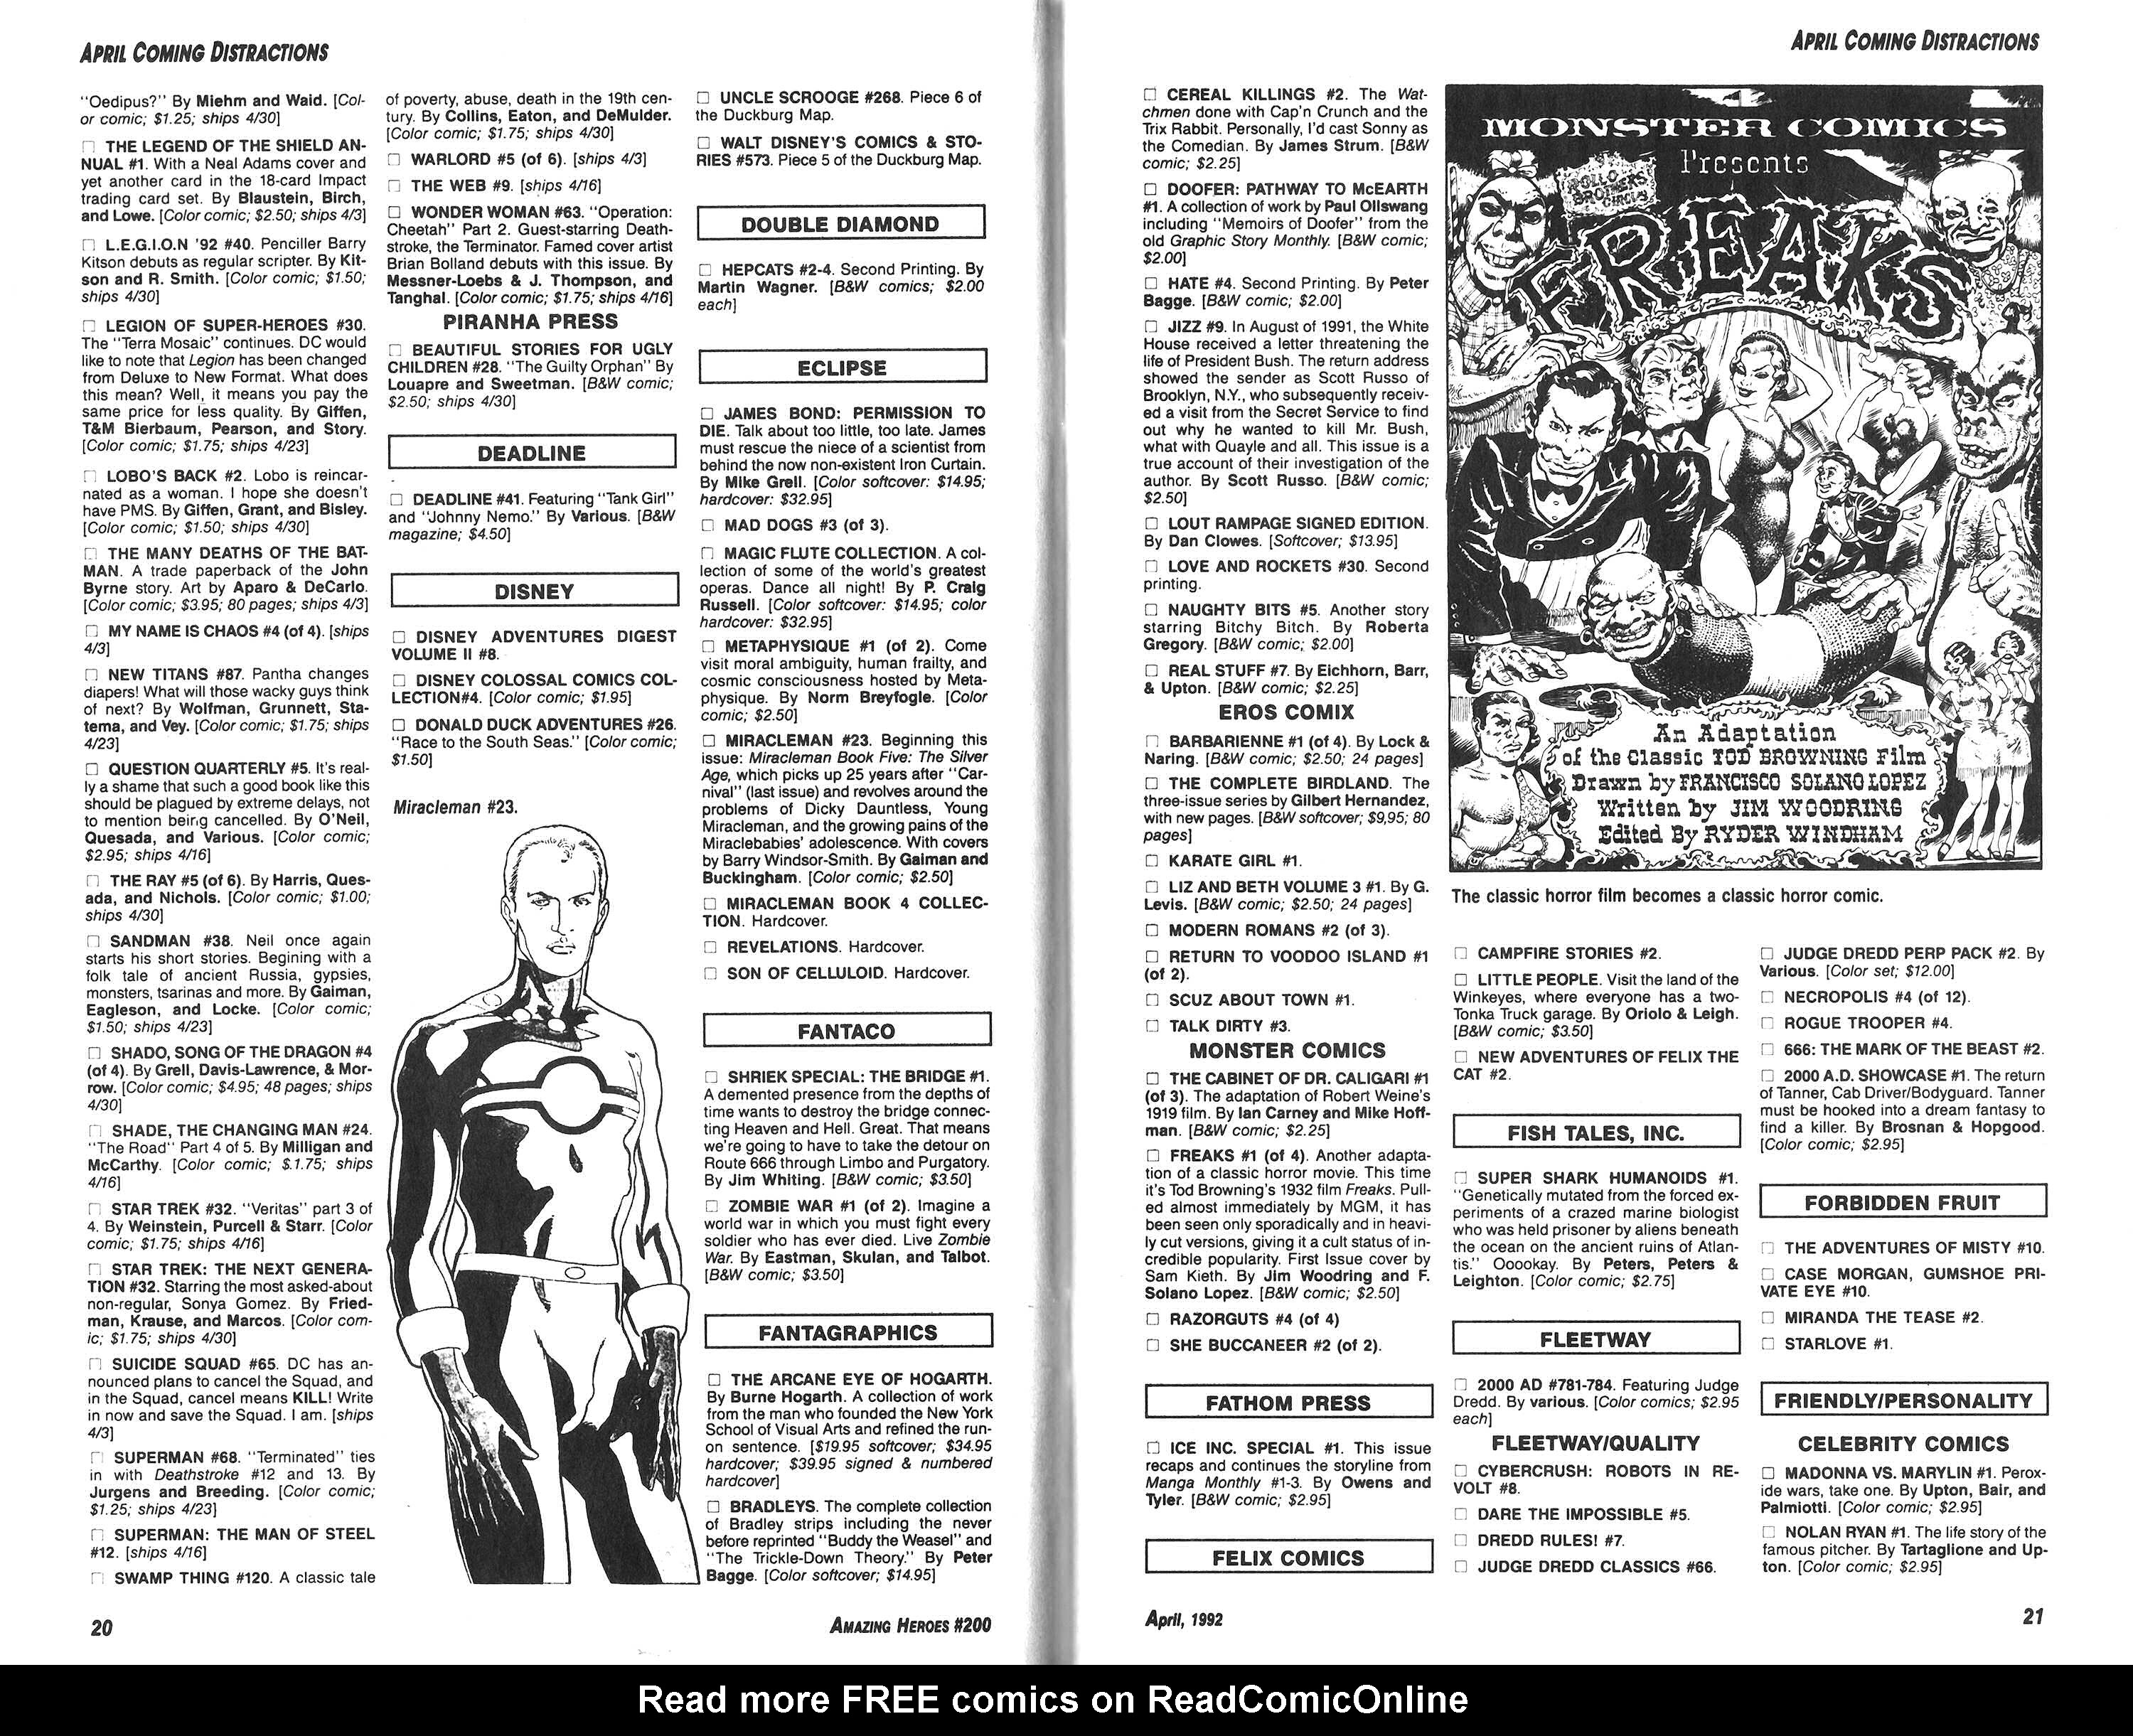 Read online Amazing Heroes comic -  Issue #200 - 11